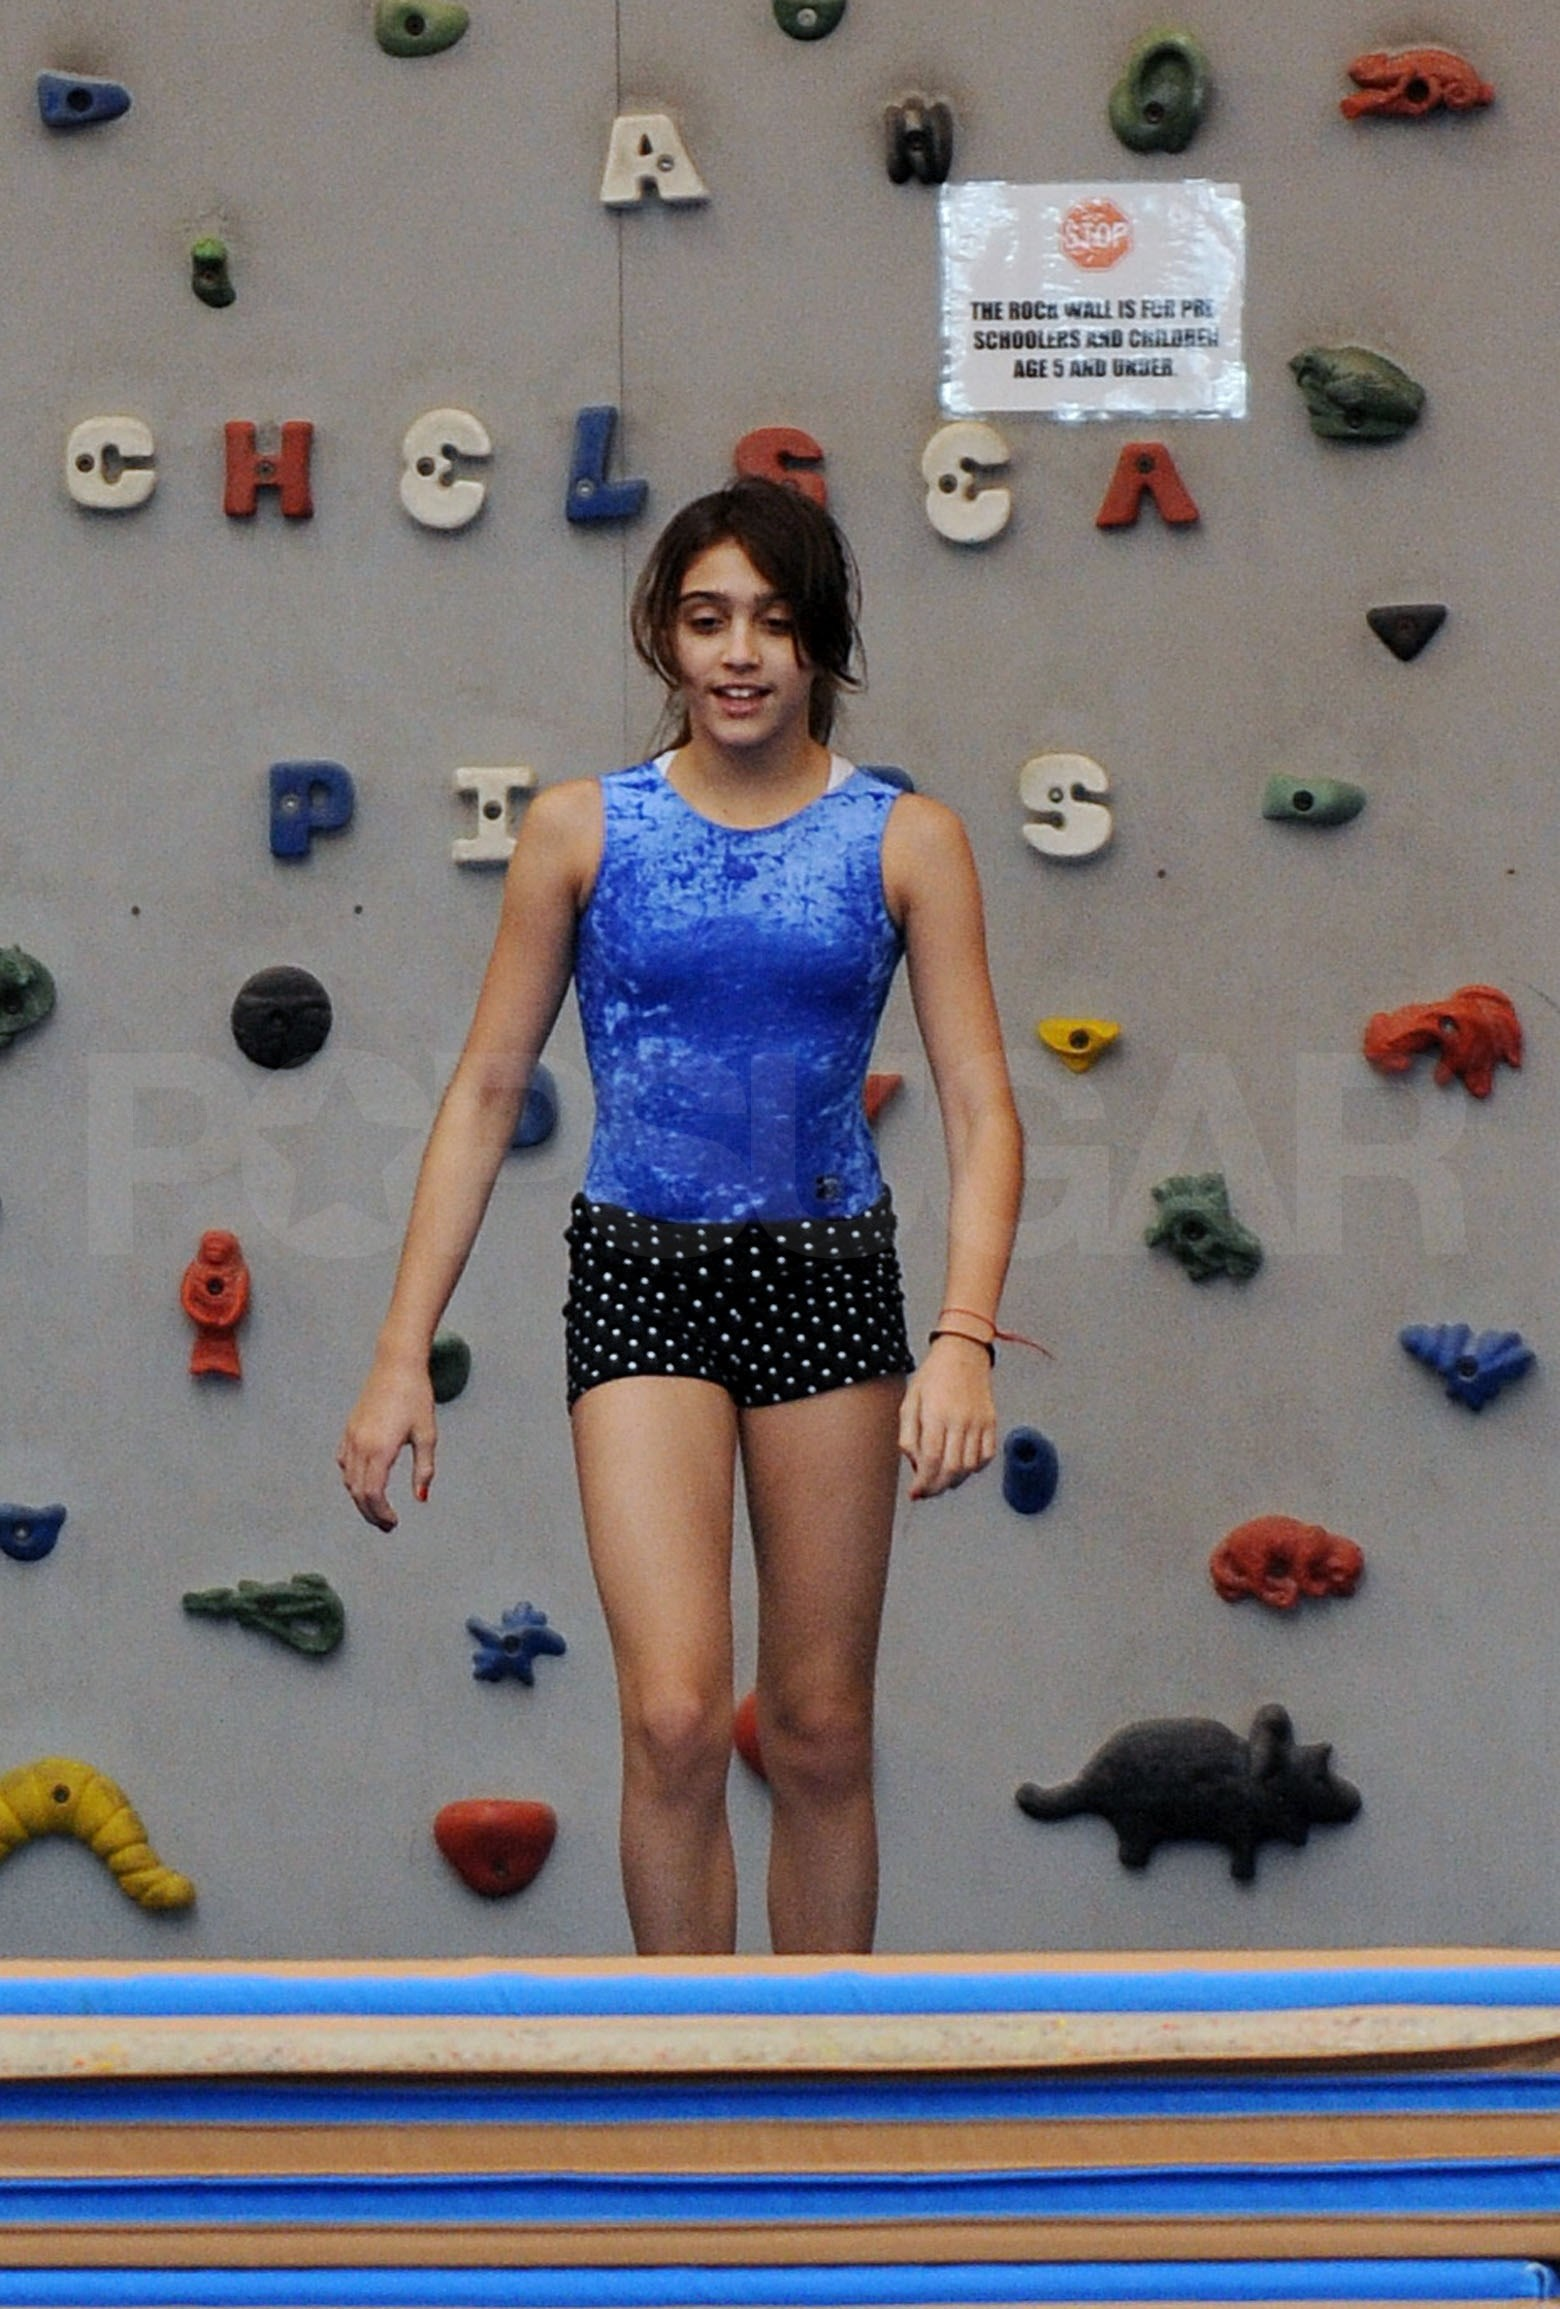 Lourdes Leon | Known people - famous people news and biographies